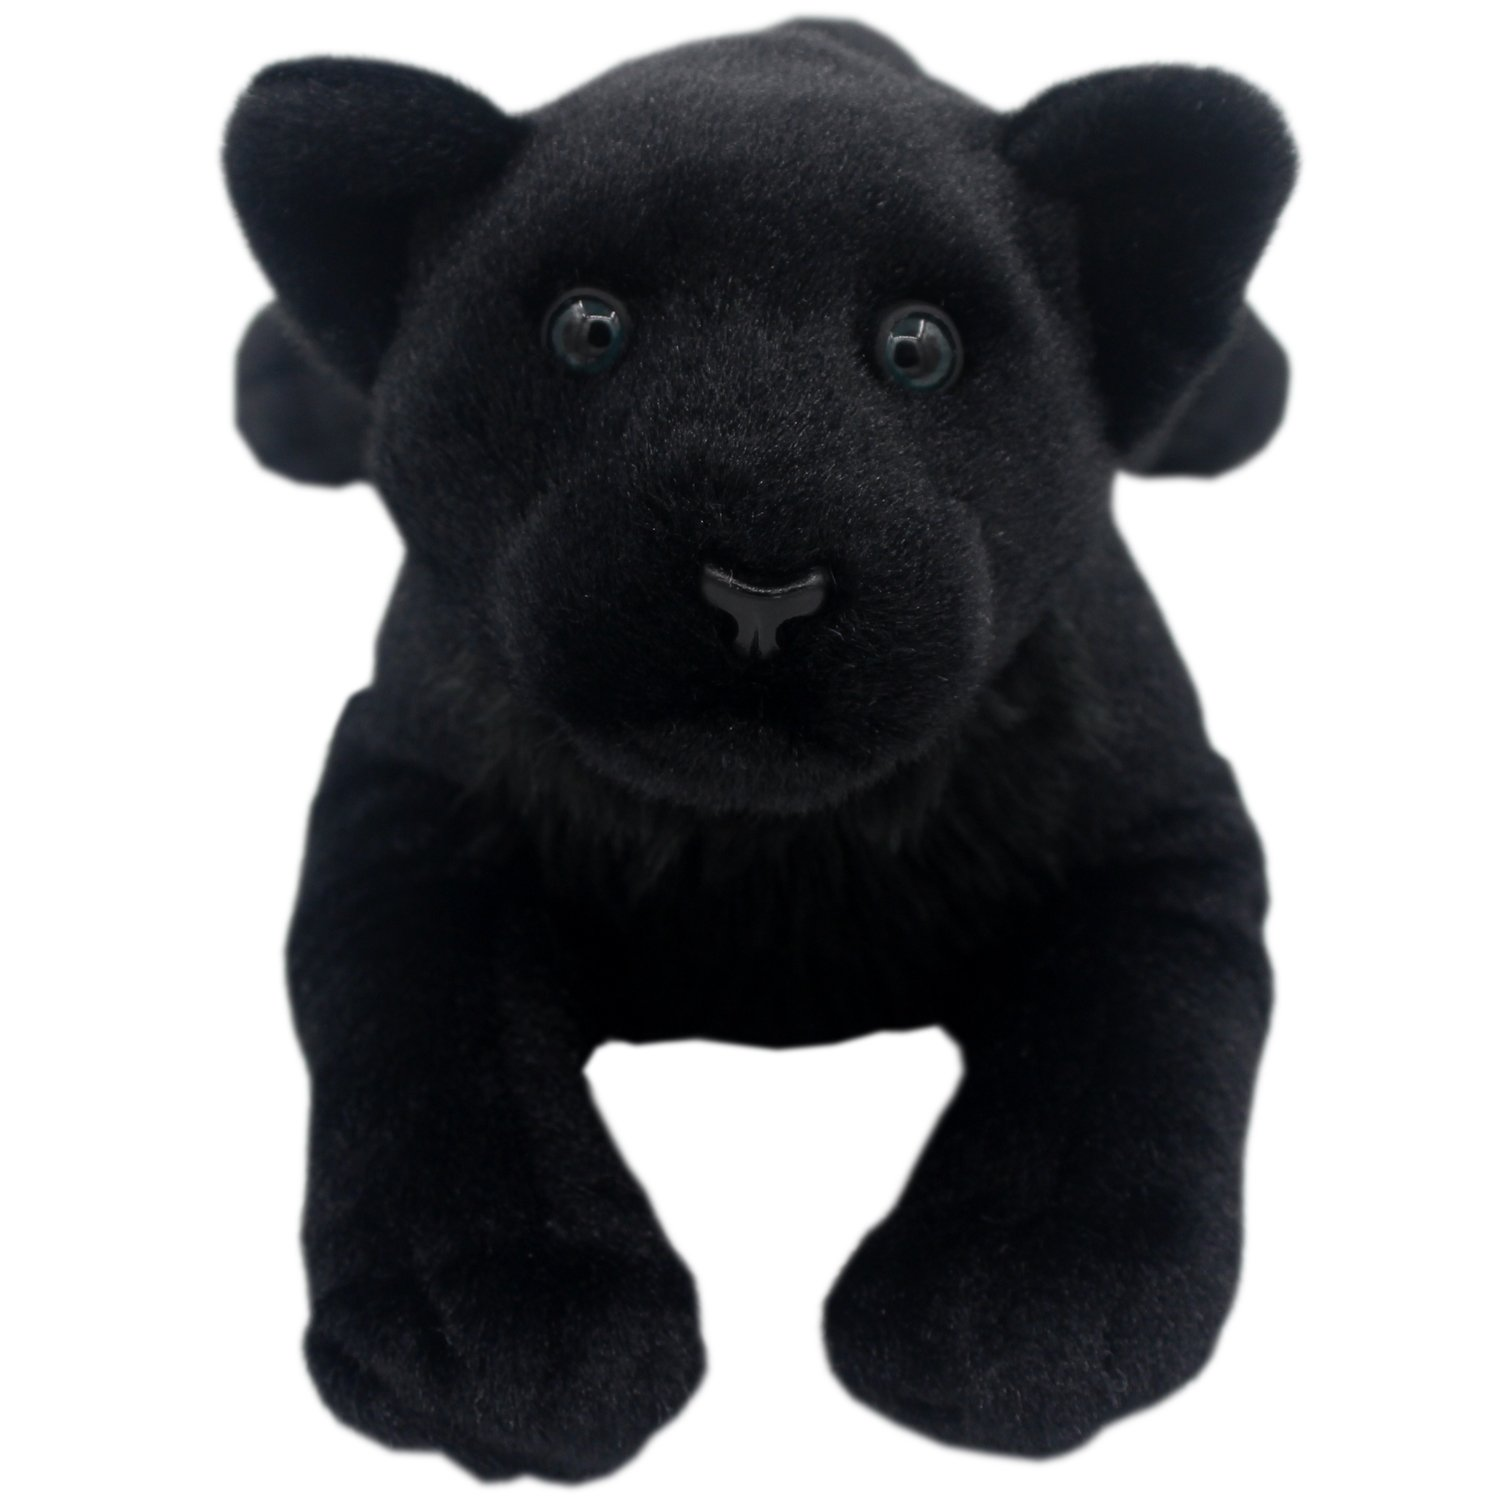 TAGLN Stuffed Animals Toys Panther Plush Lifelike Tiger Leopard Lioness Pillows (Black Panther, 24 Inch) by TAGLN